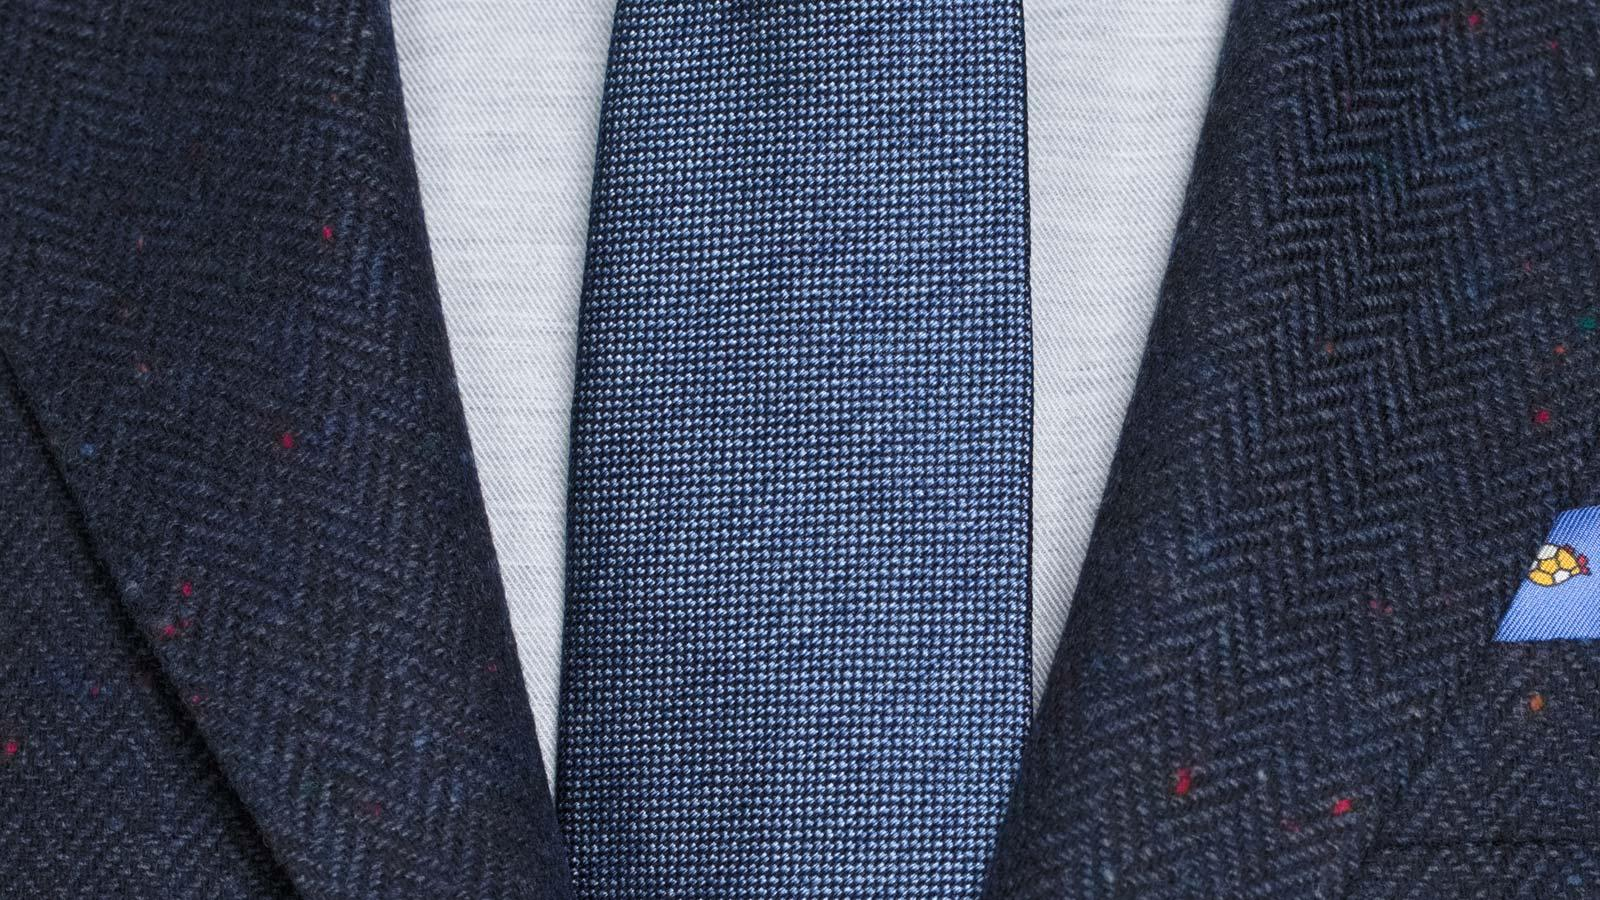 Navy Donegal Herringbone Tweed Blazer - slider image 1